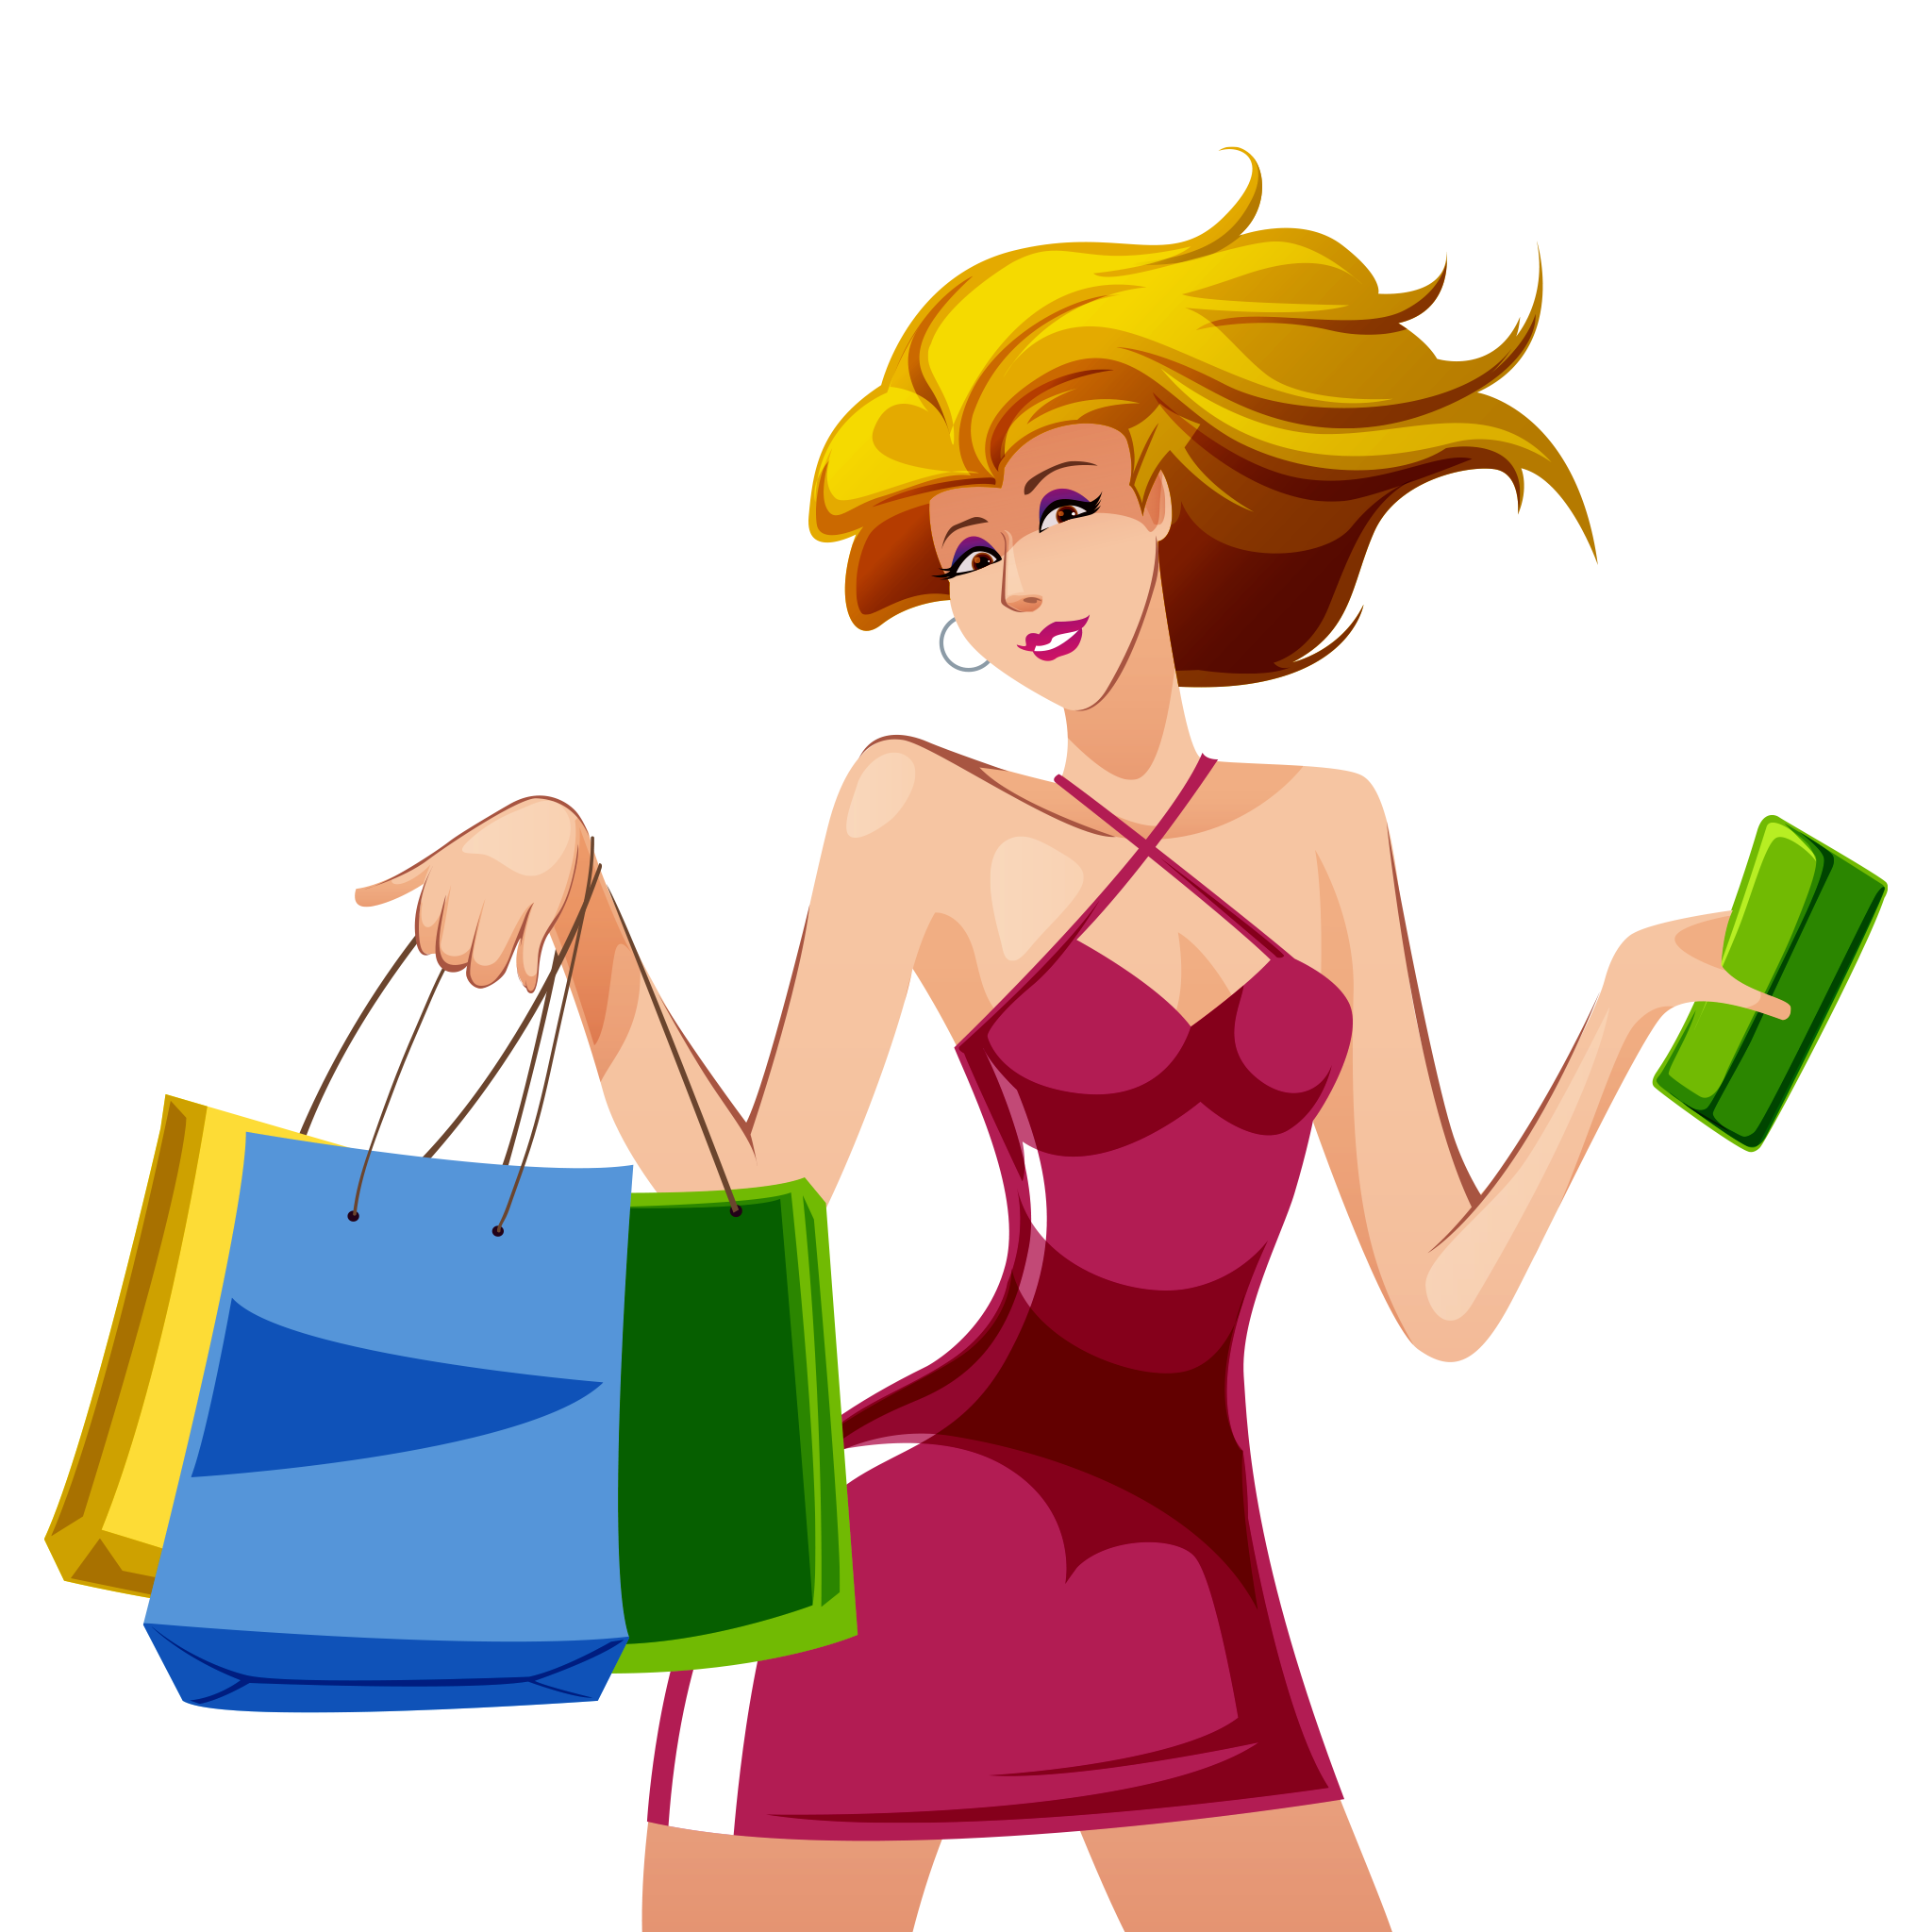 Shopping transparent girl png. Clipart image free download